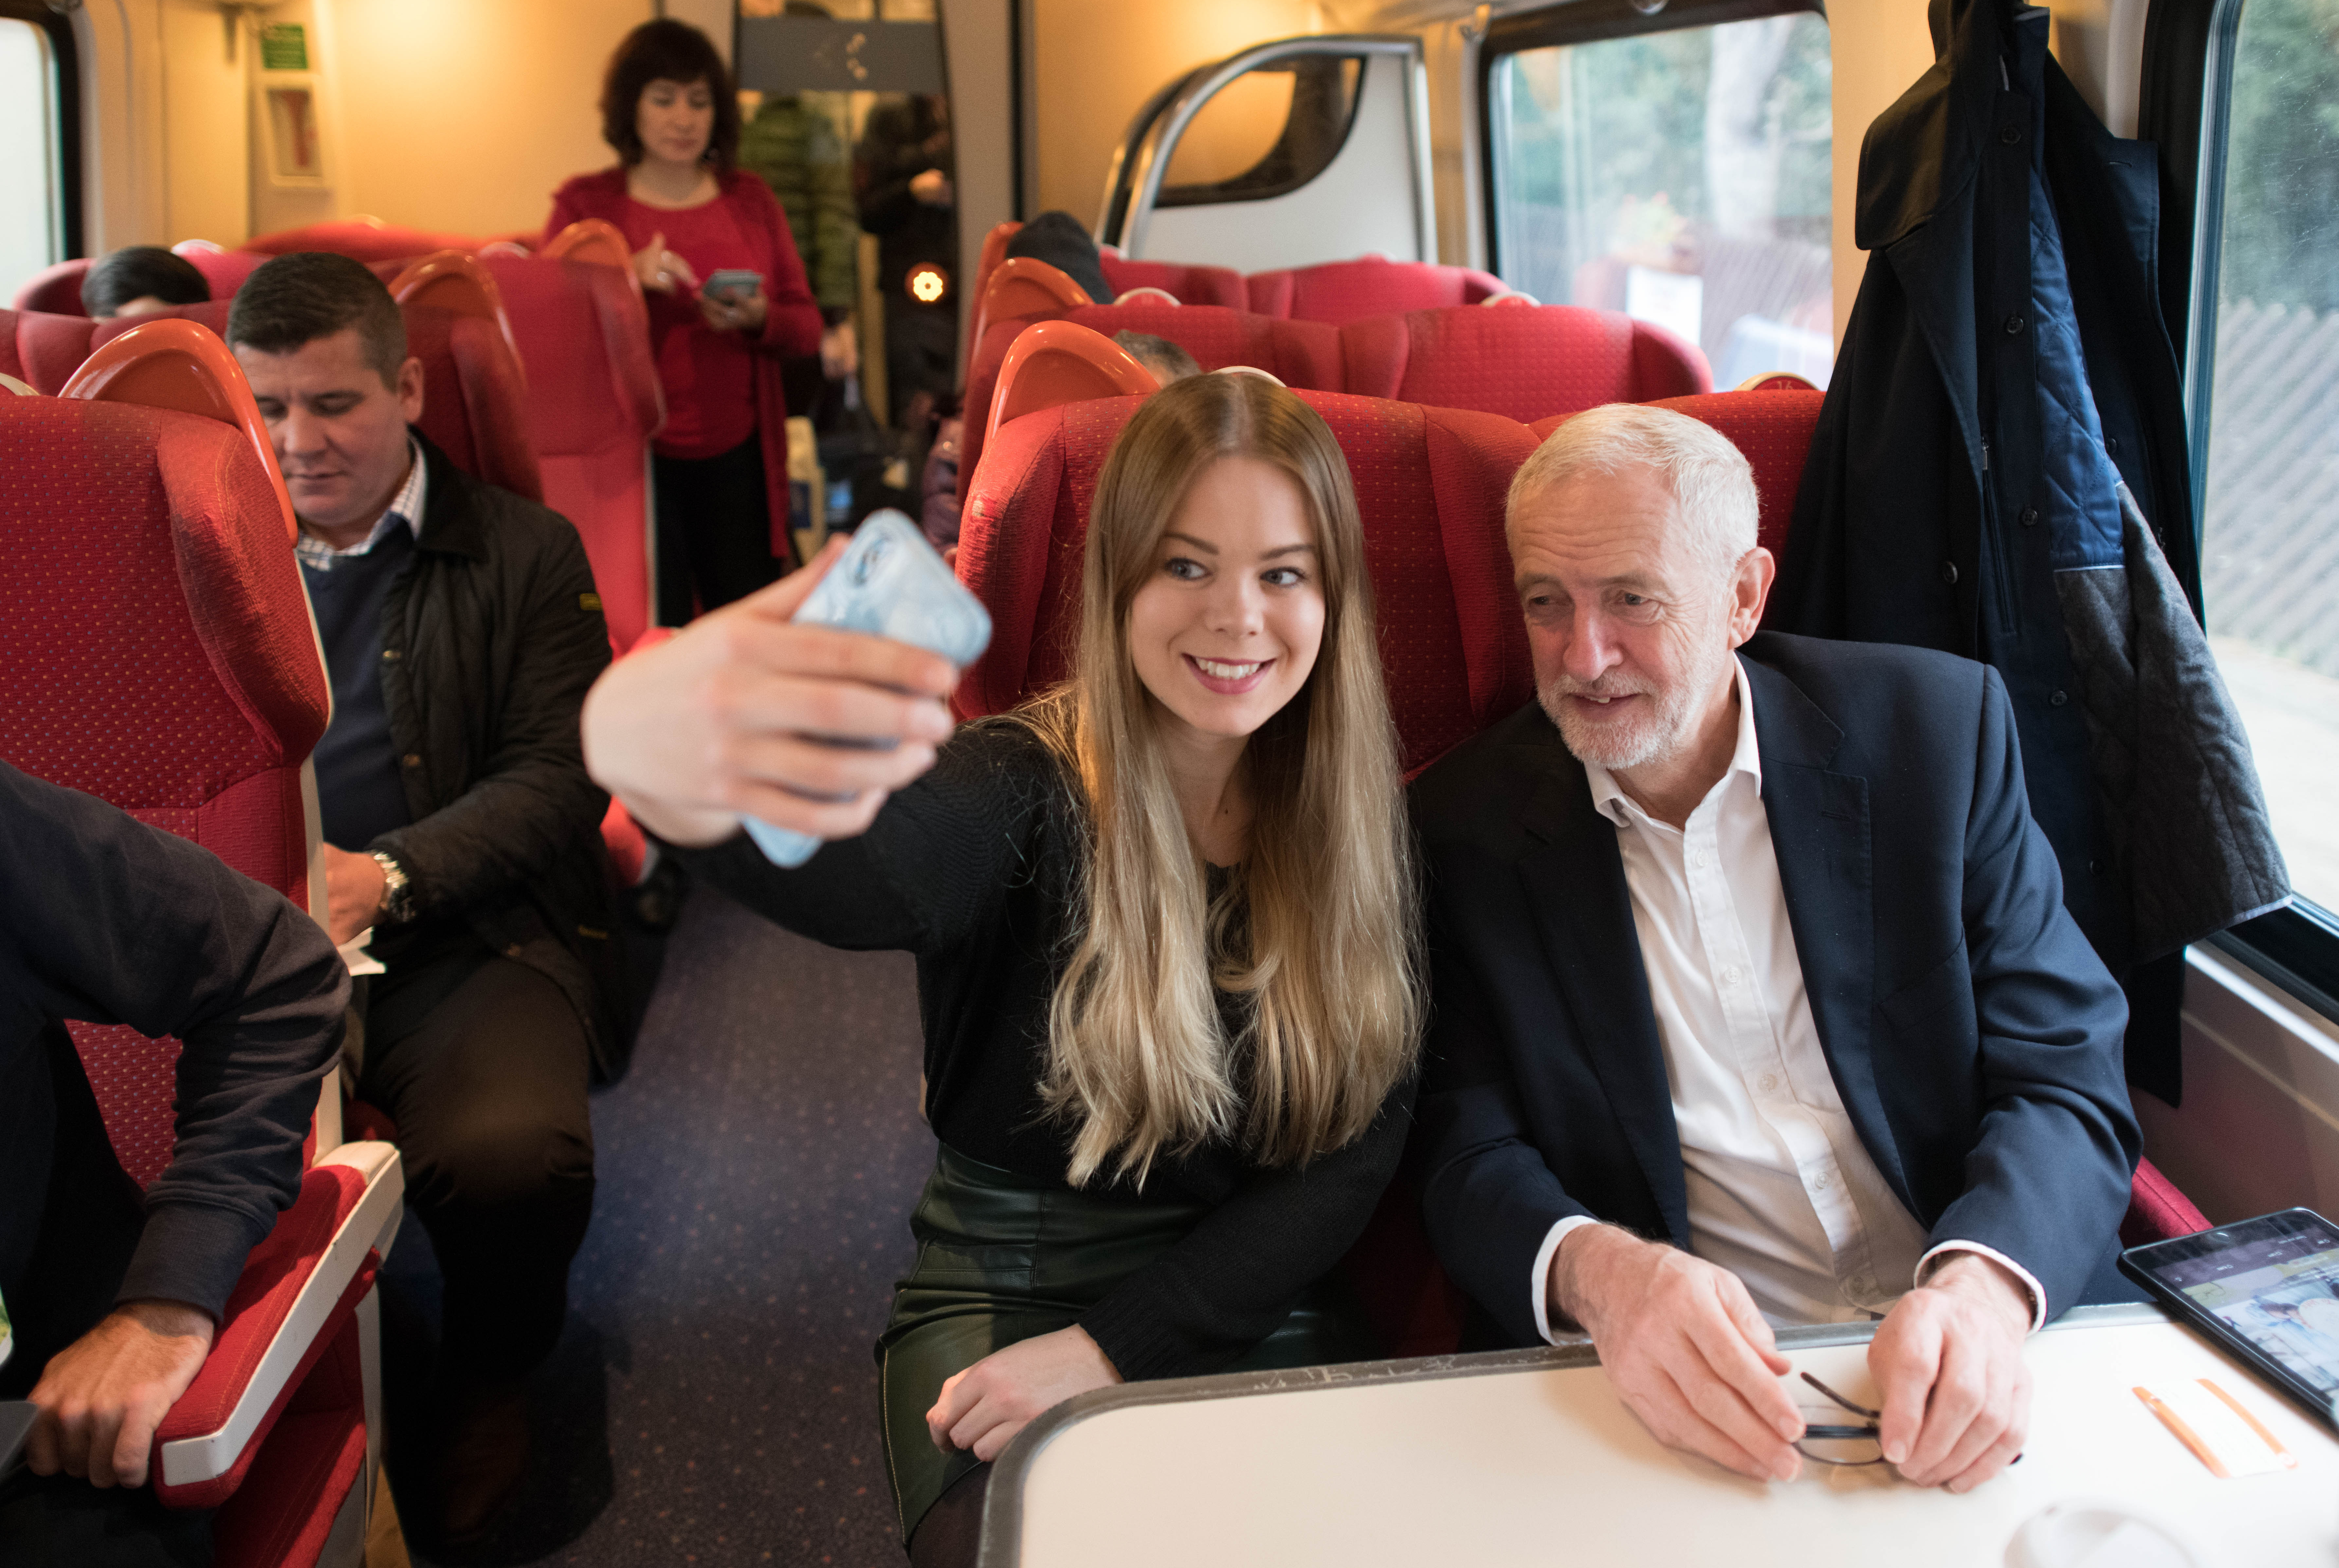 Labour Party leader Jeremy Corbyn meets a supporter on a train on his return from a visit to Sheffield, South Yorkshire, while on the General Election campaign trail.